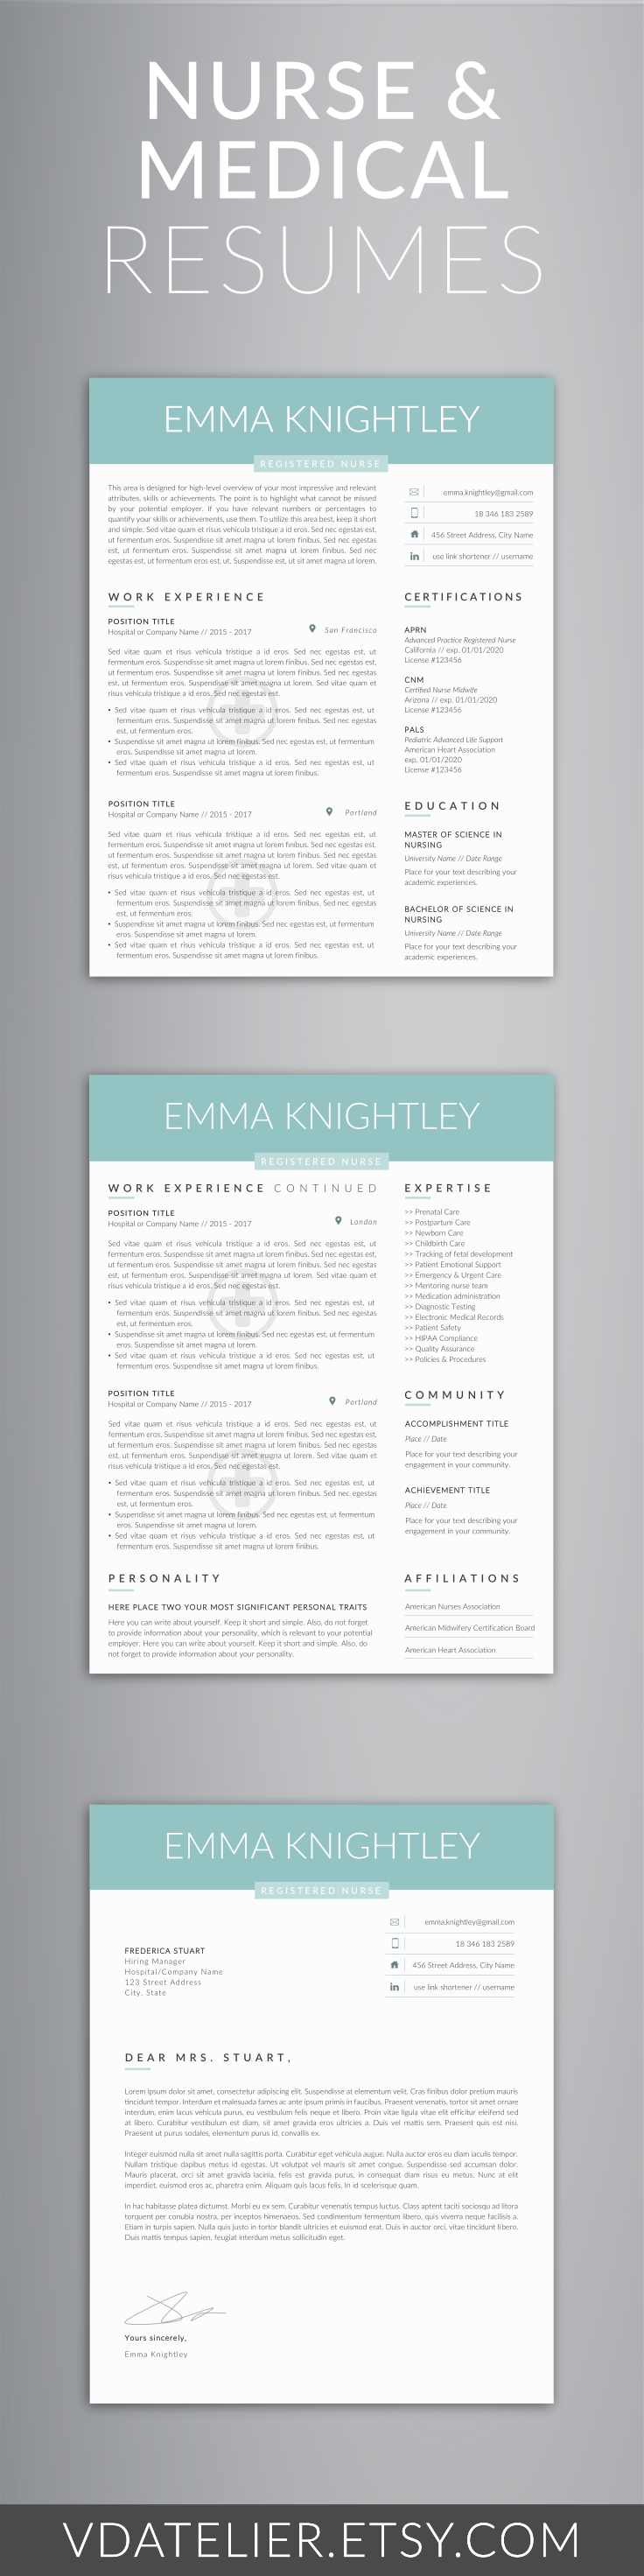 Functional Resume Template Free Pdf Doctor Resume Template For Word Nurse Resume Template  Nurse Cv  Secretary Resume Objective Word with Resume Templet Pdf Doctor Resume Template For Word Nurse Resume Template  Nurse Cv Template   Rn Resume How To List Skills On A Resume